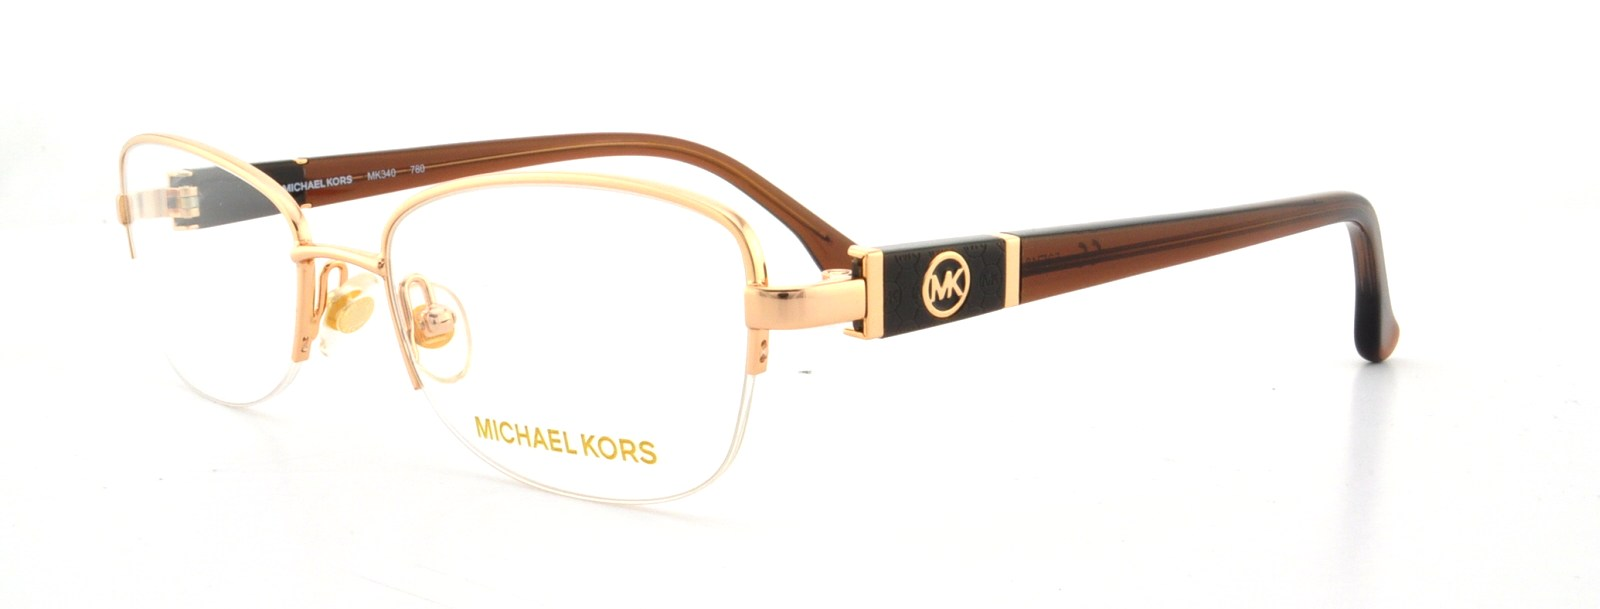 Picture of Michael Kors MK340